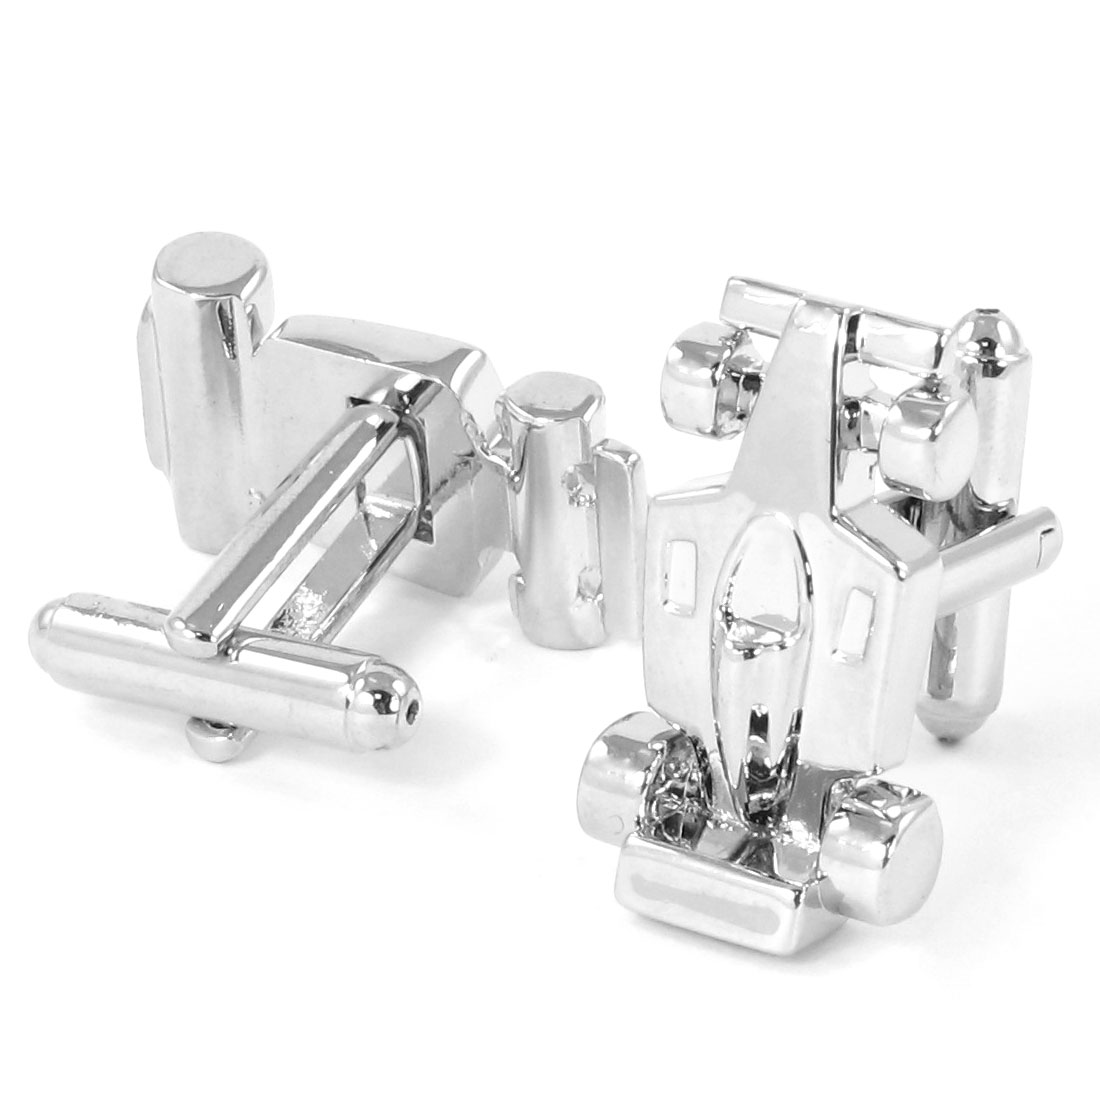 Pair Men Metallic Auto Car Design Tuxedo Shirt Decor Cufflinks